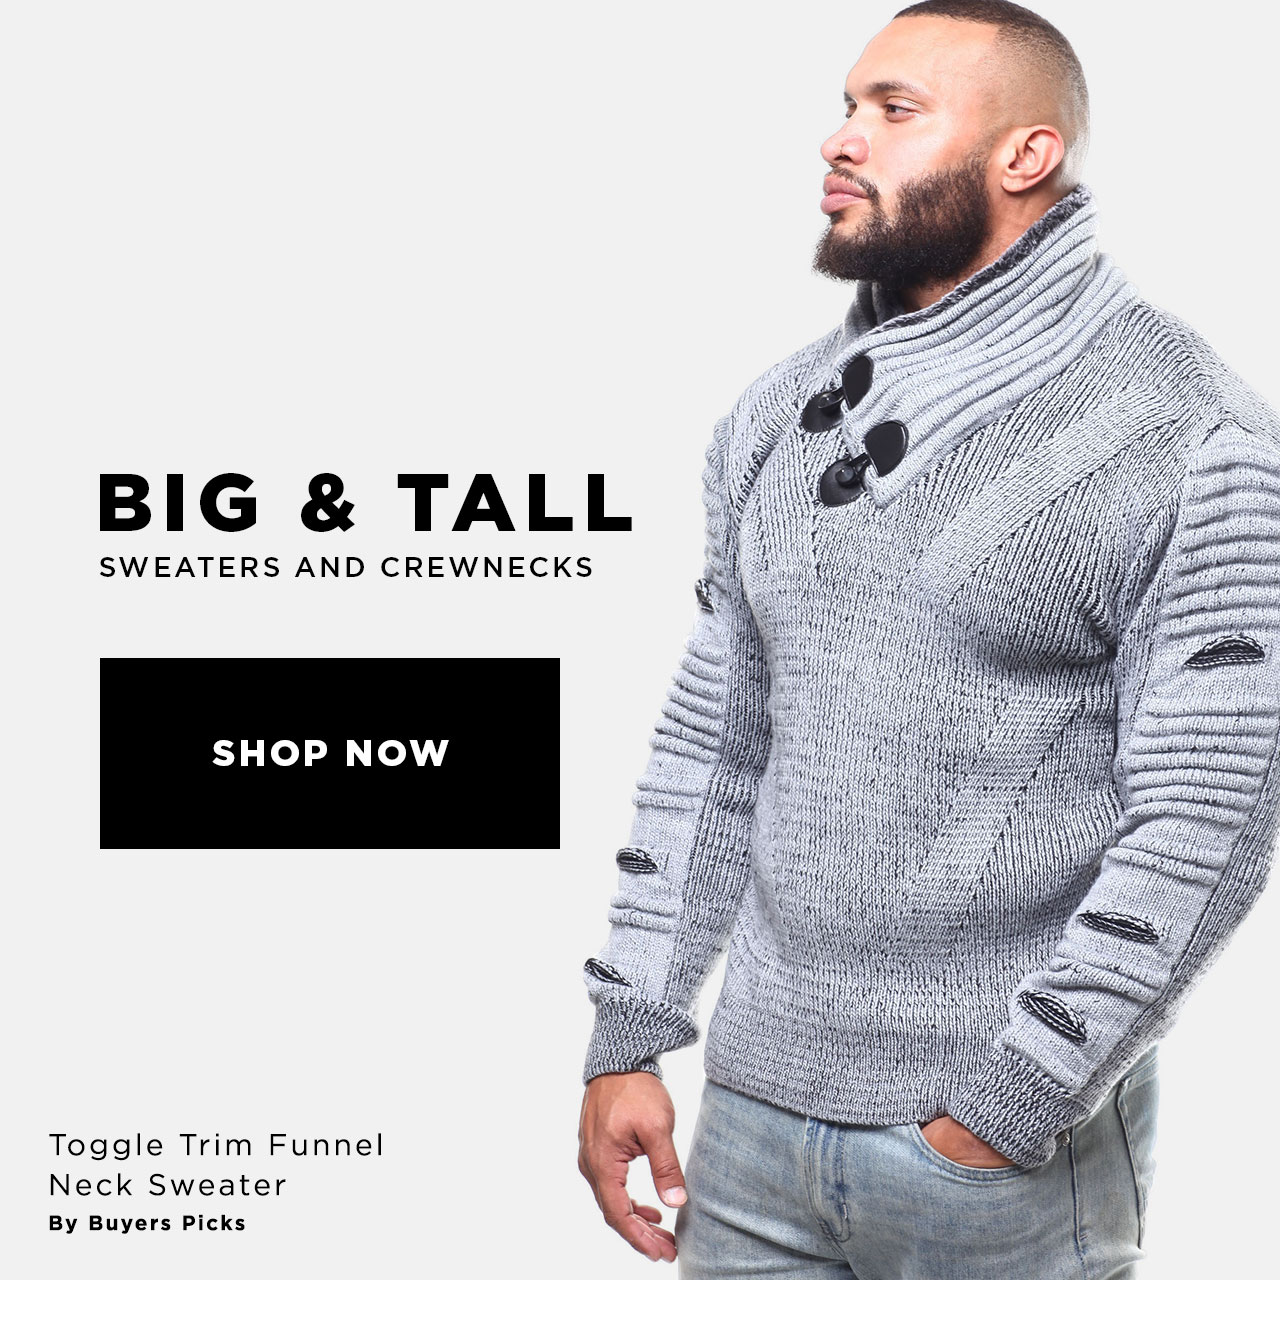 Big and Tall Crewnecks and Sweaters